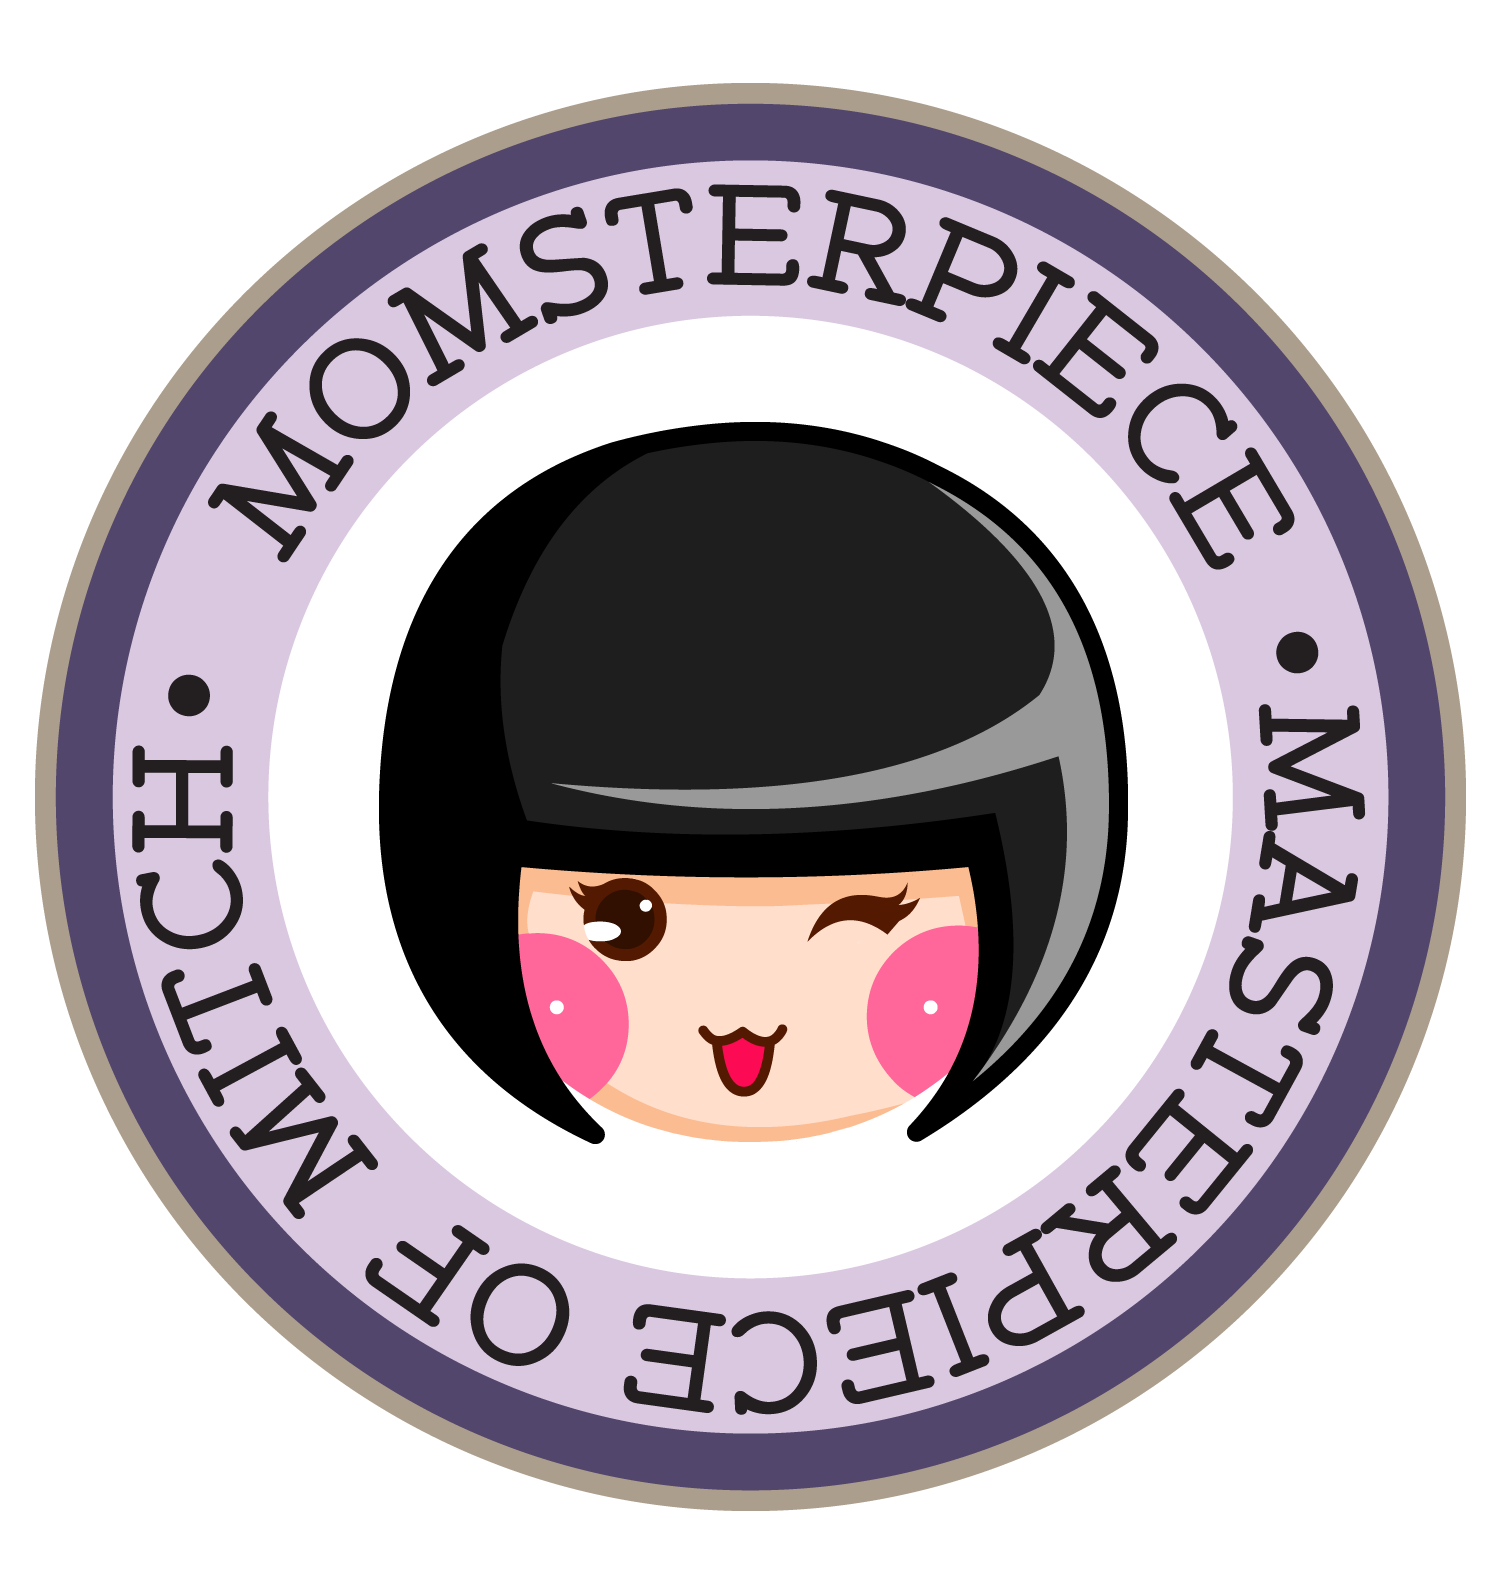 Momsterpiece